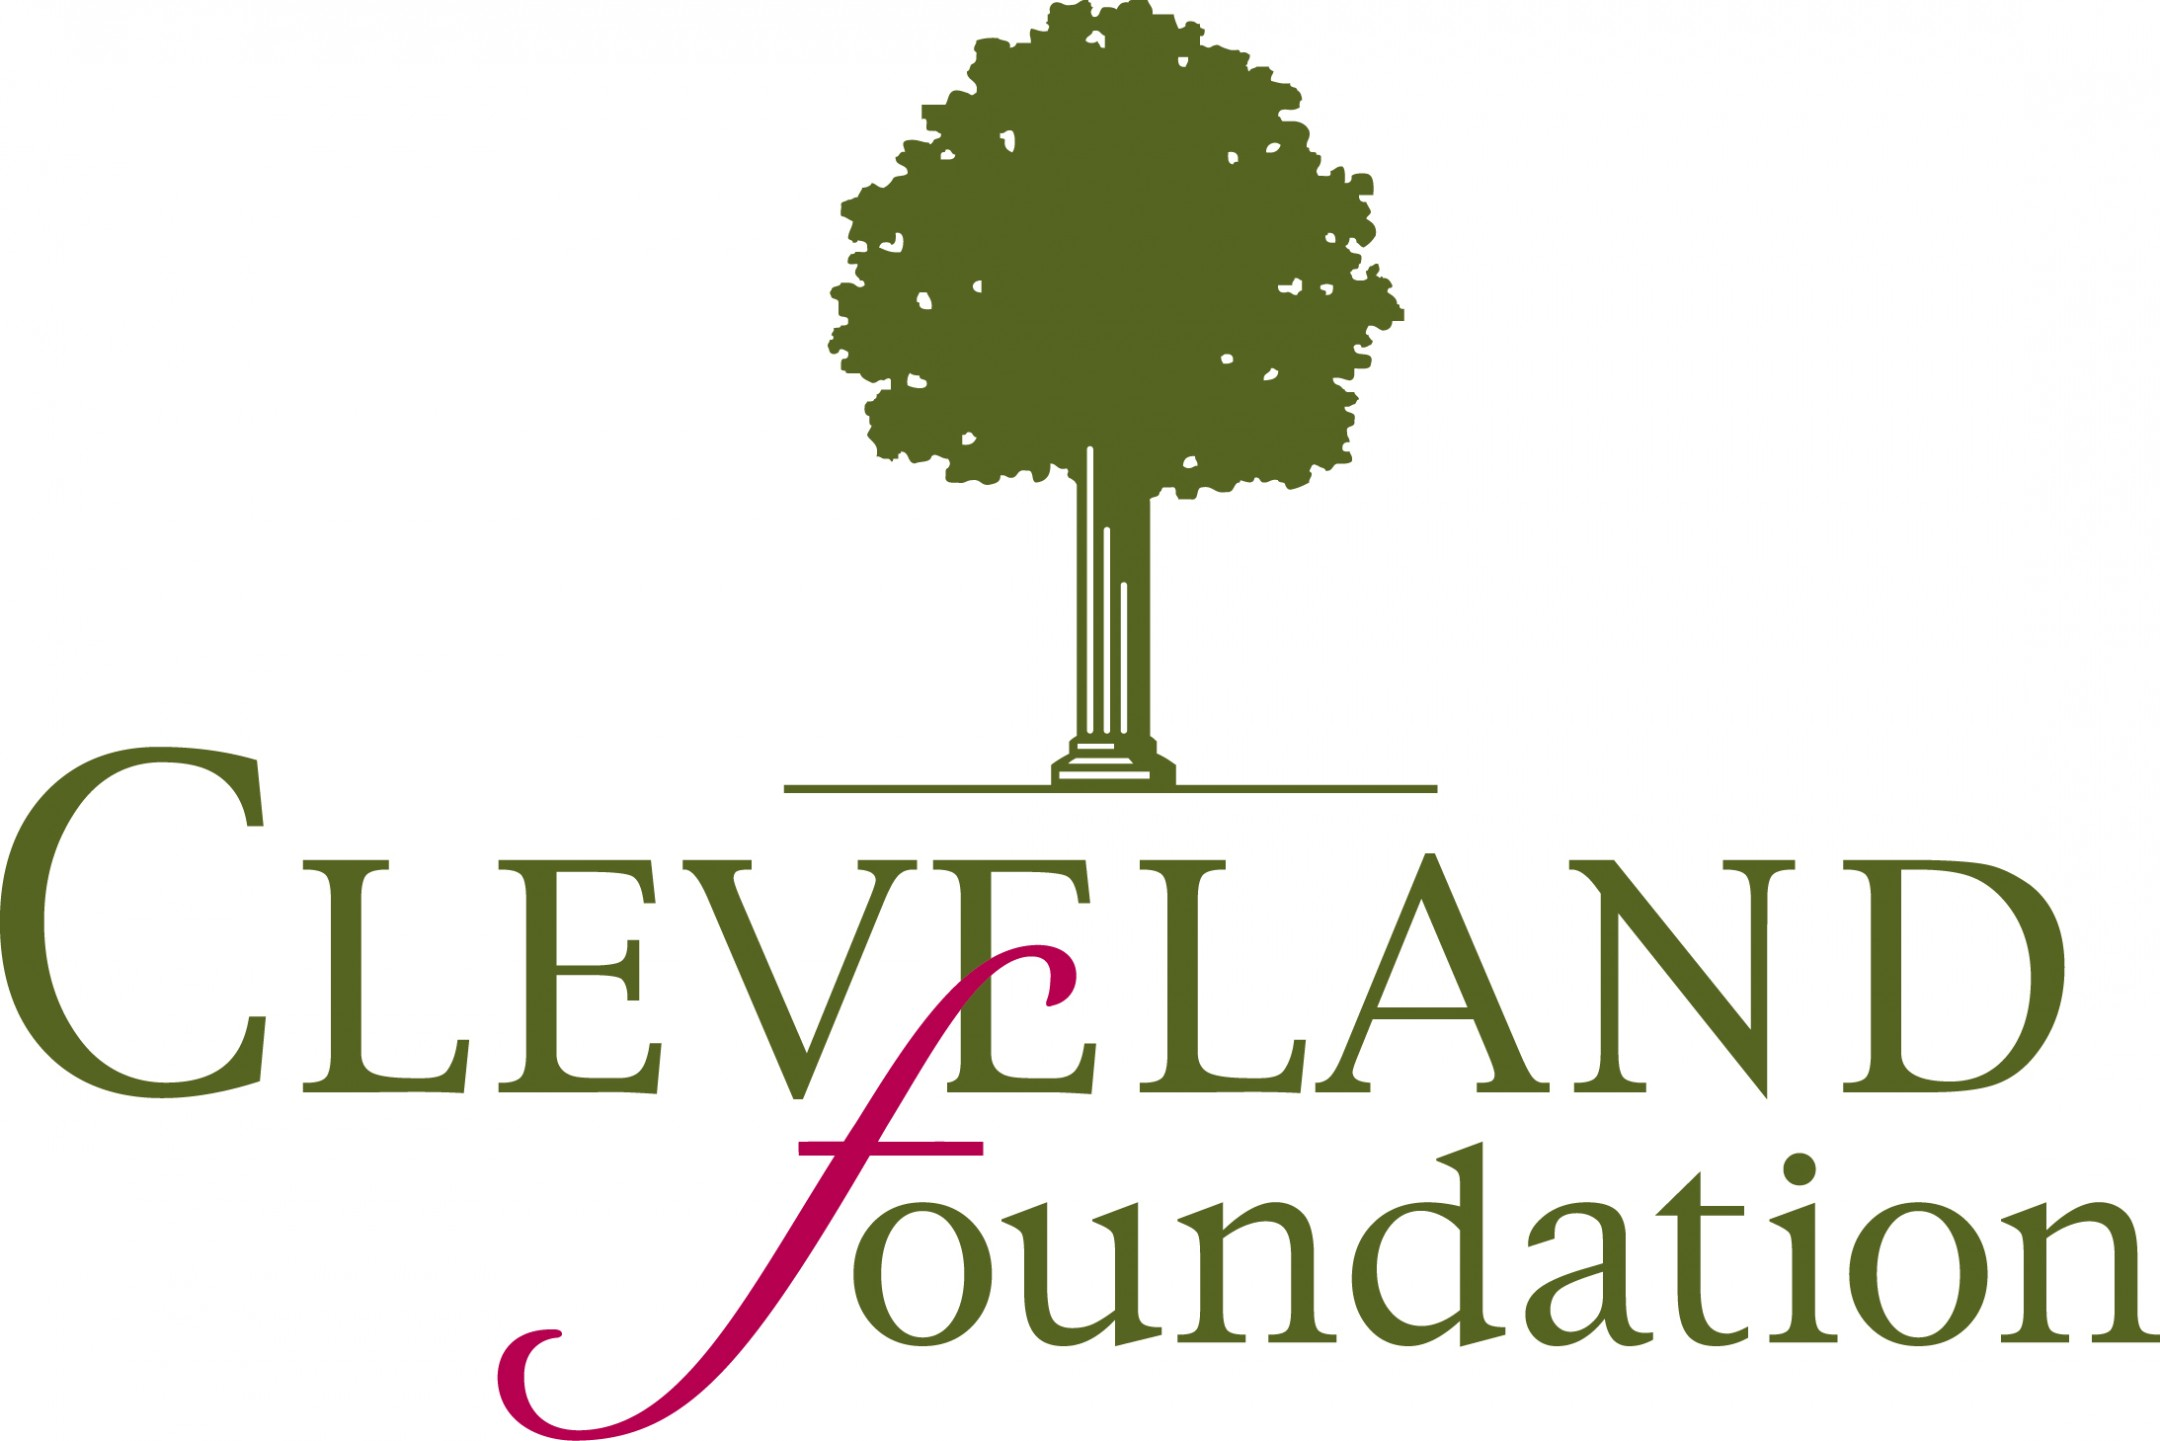 Cleveland-Foundation-logo-color-with-tree-03.02.15-2160x1441.jpg